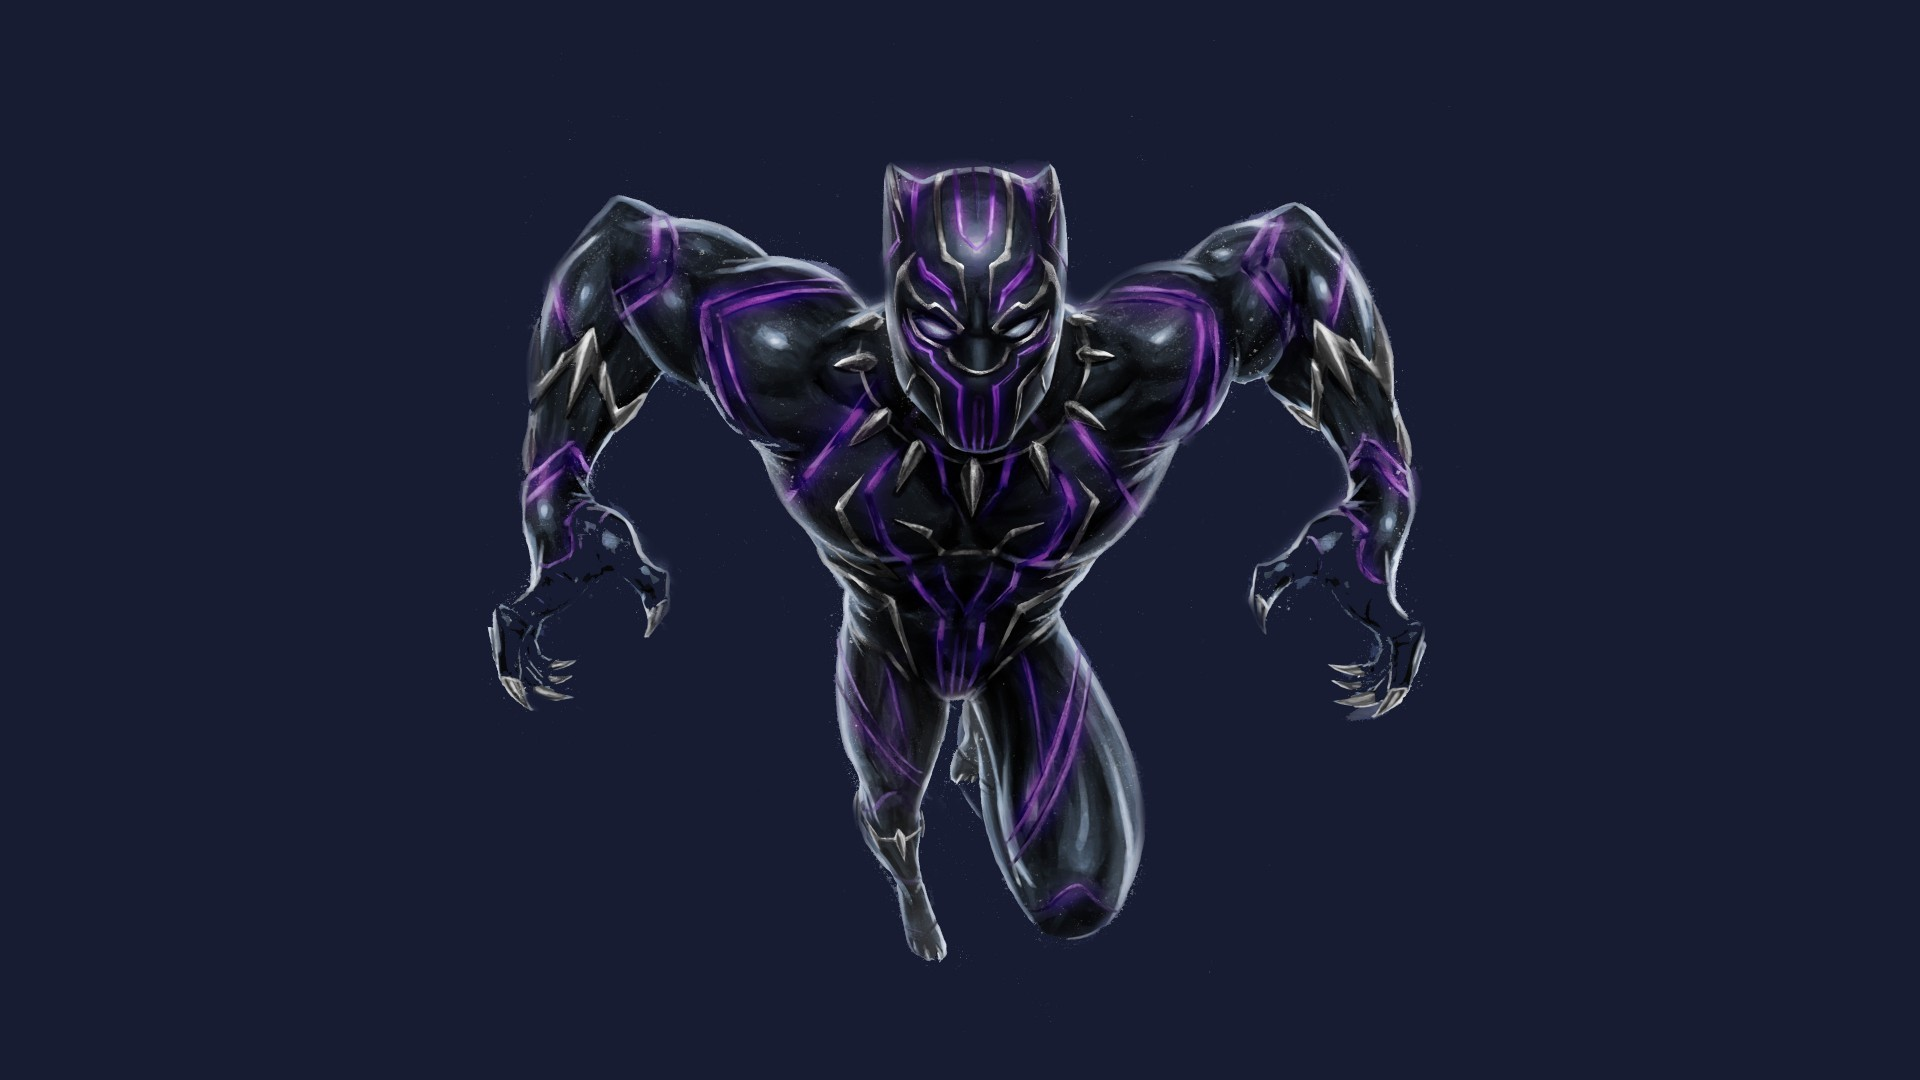 1920x1080 Black Panther Wallpaper Purple Background